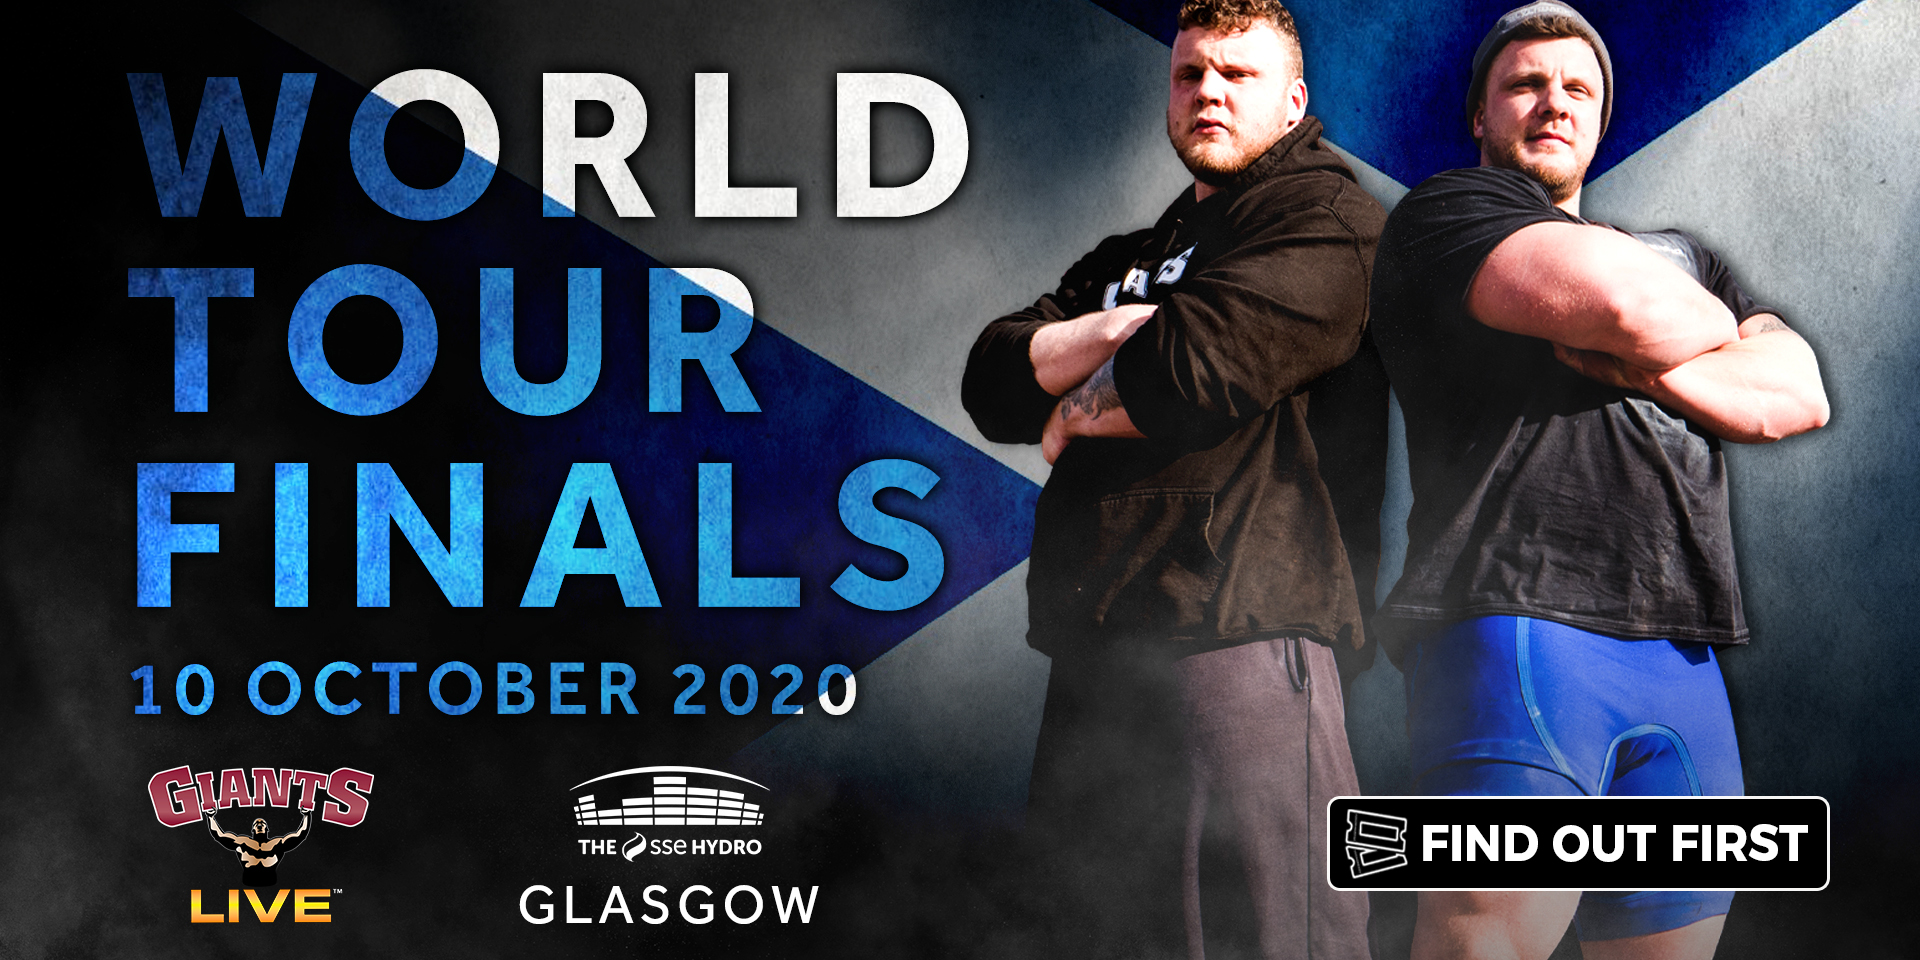 12 of the STRONGEST men on the planet! 5 EPIC events! 1 JAW-DROPPING Tour Finale!